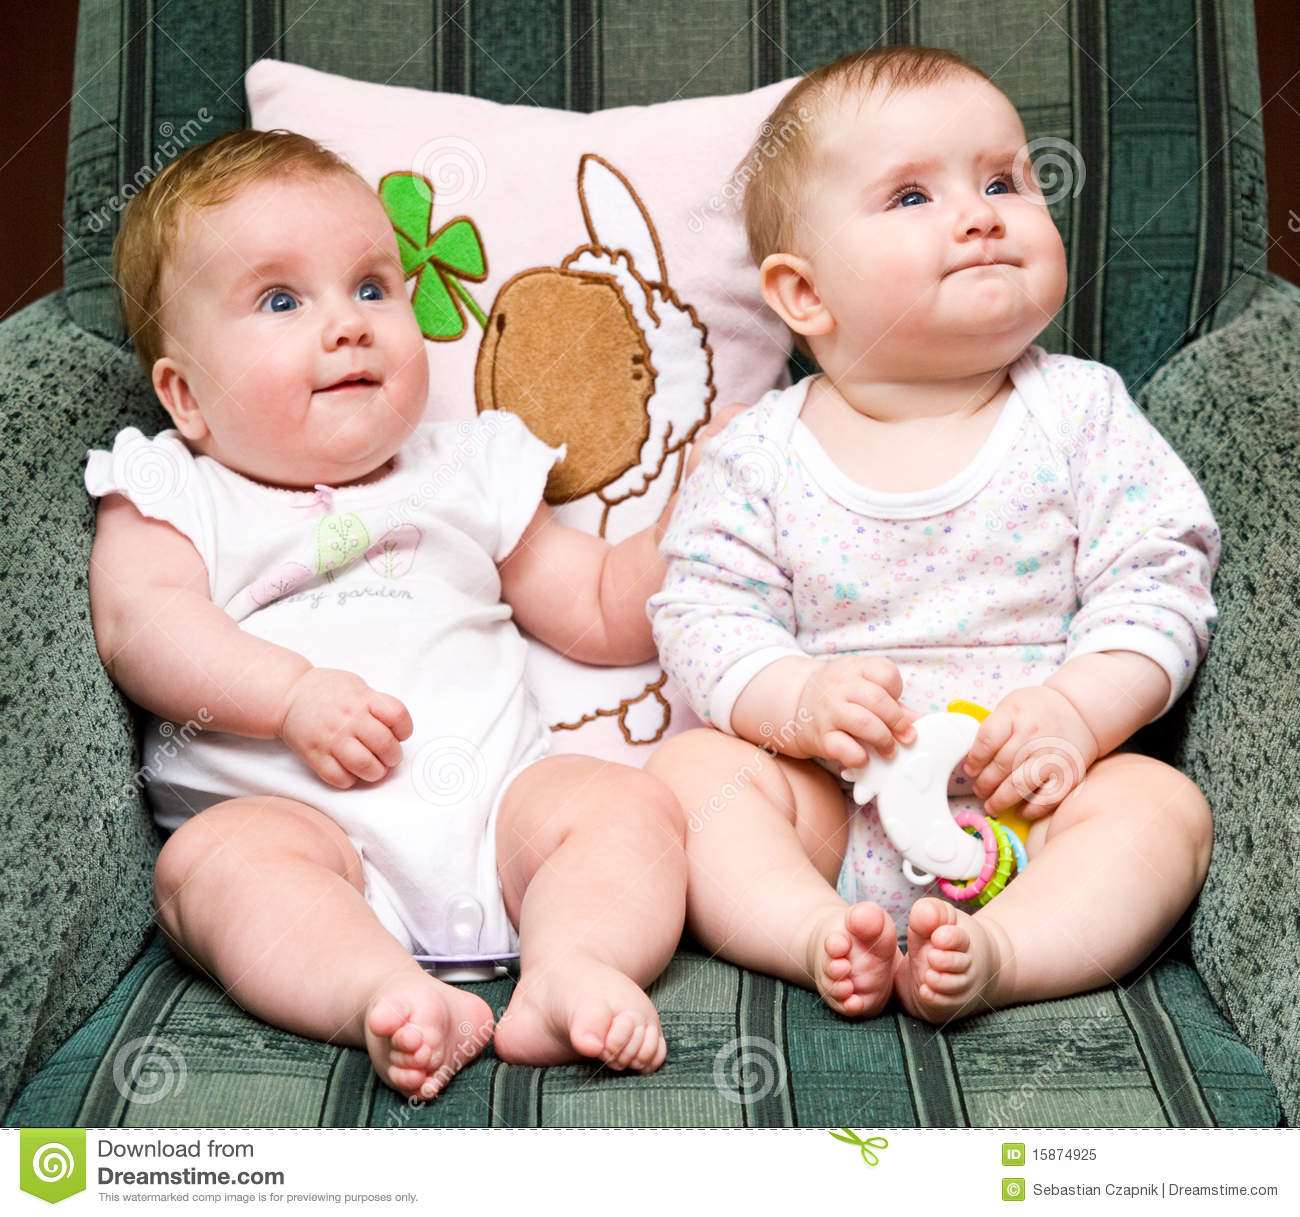 babies stock images - download 66,696 photos